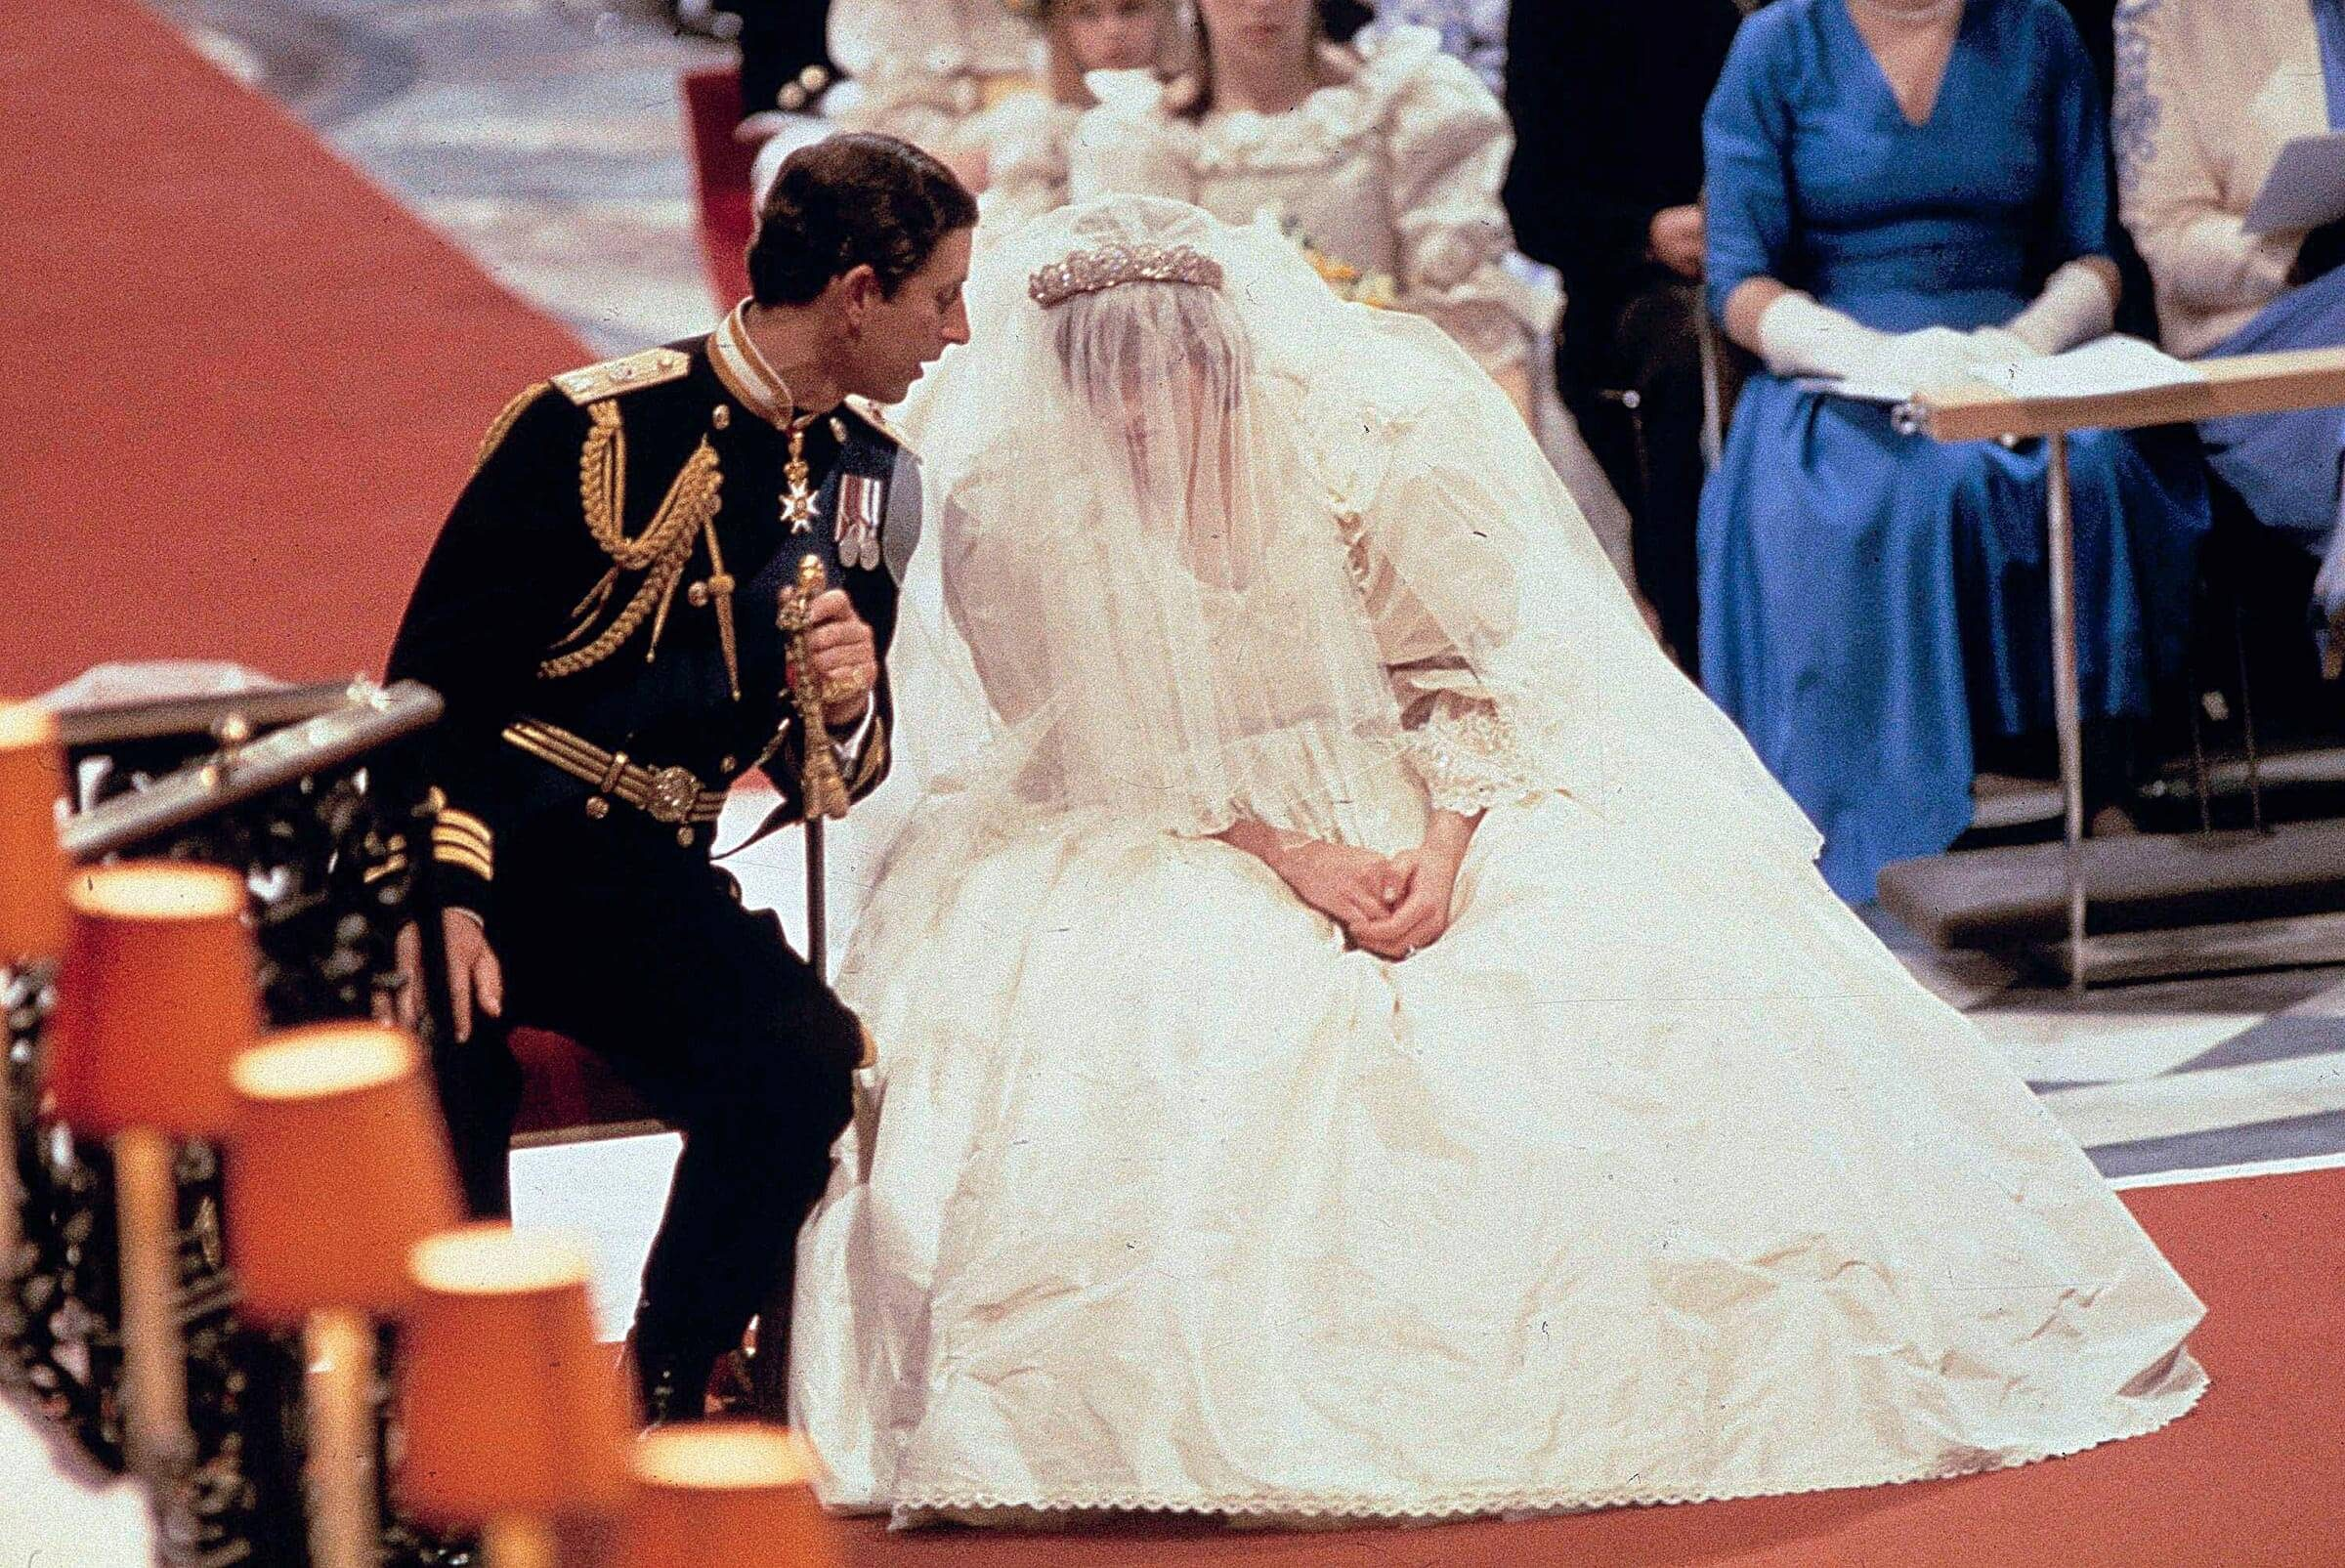 Princess Diana Wedding: Photos from Her Wedding to Prince Charles ...